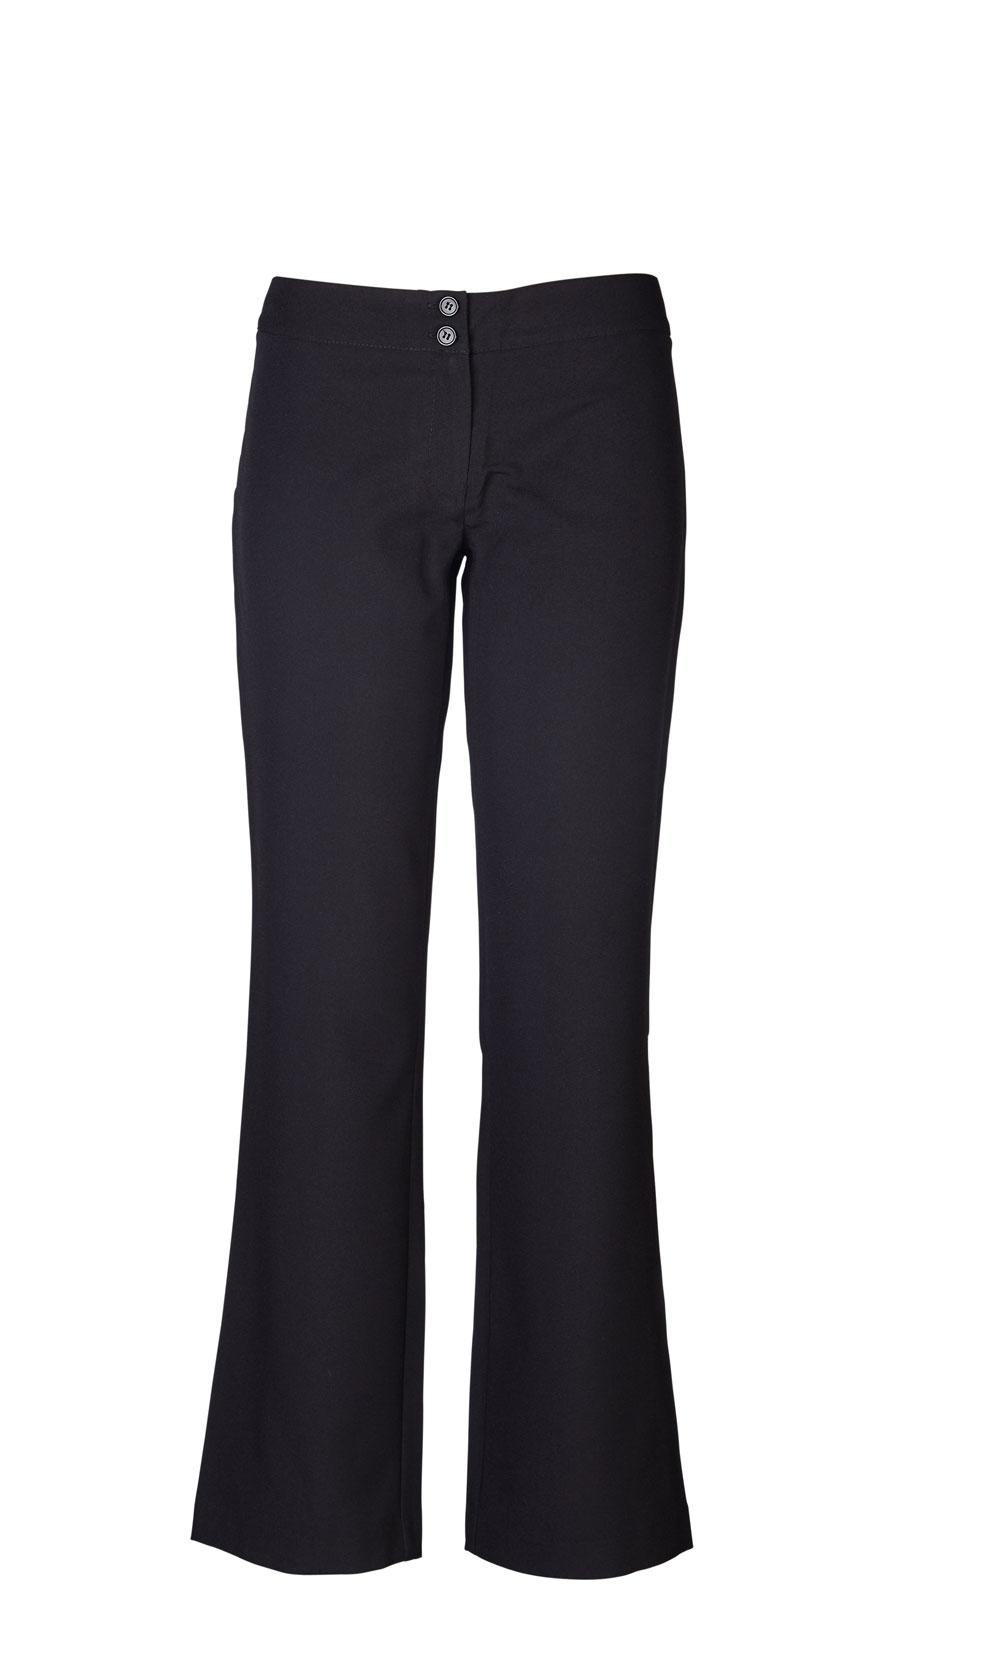 Susan Hipster Pants - Black